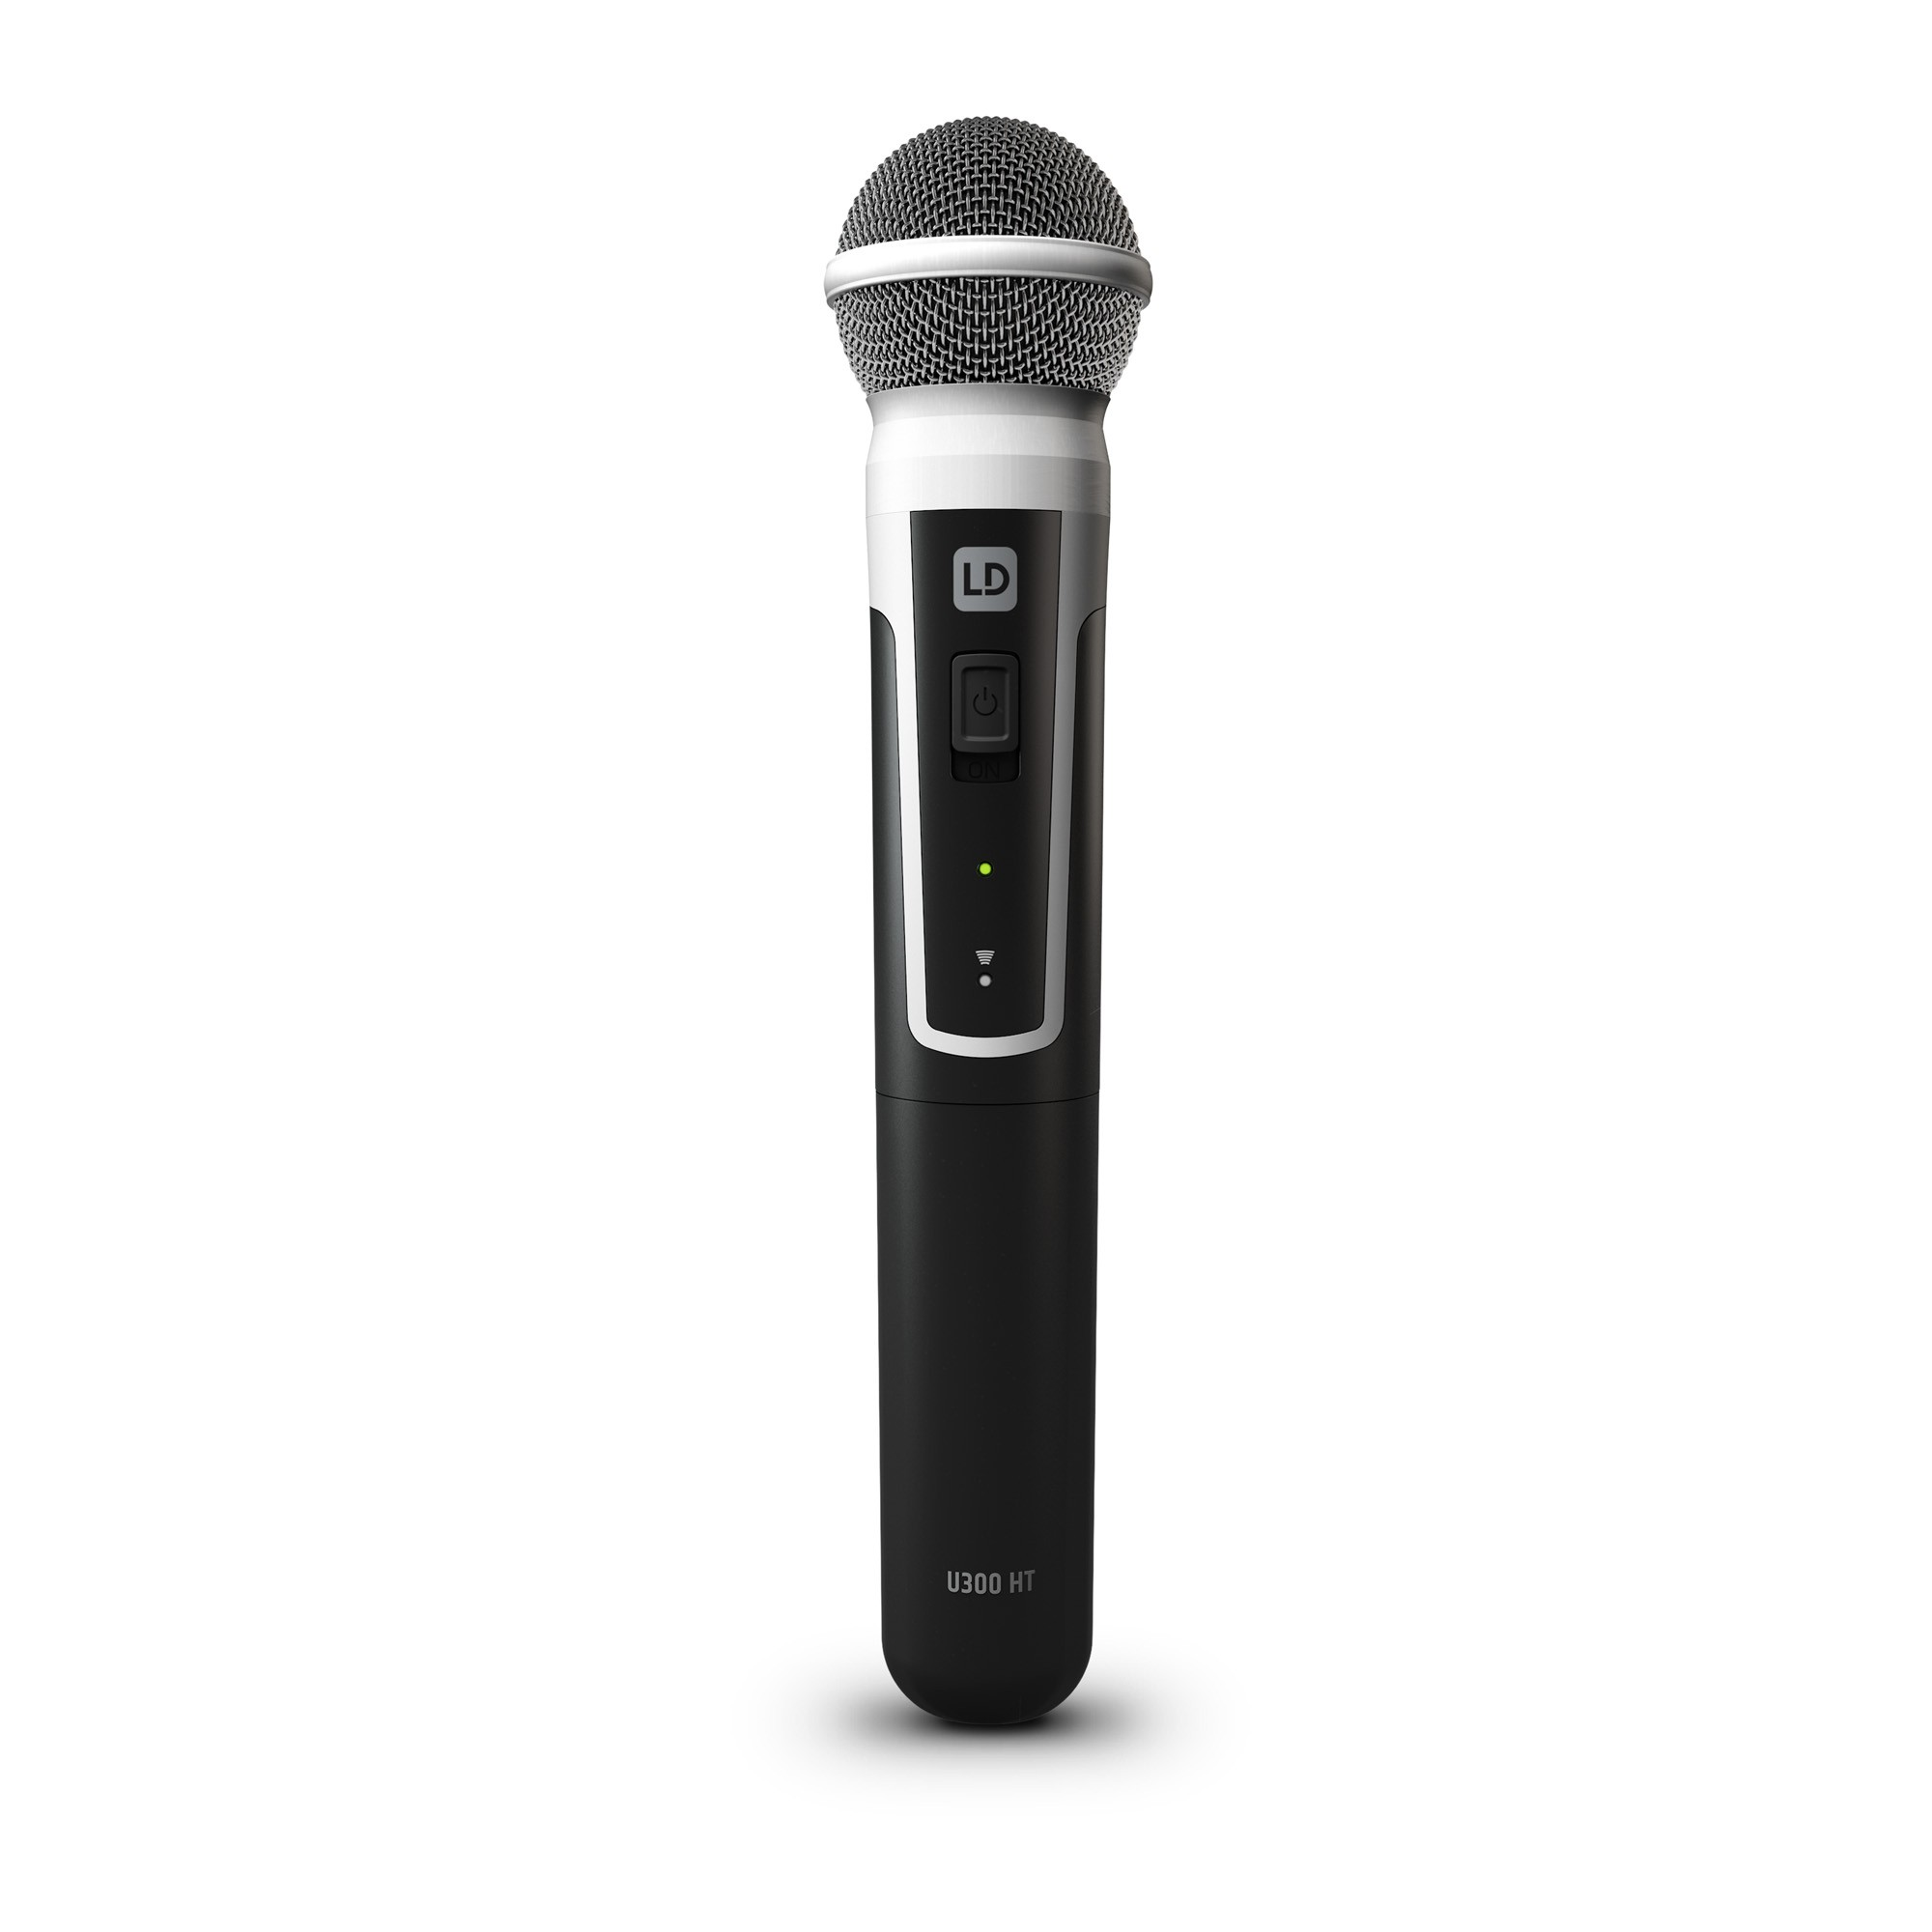 U308 HHD Wireless Microphone System with Dynamic Handheld Microphone